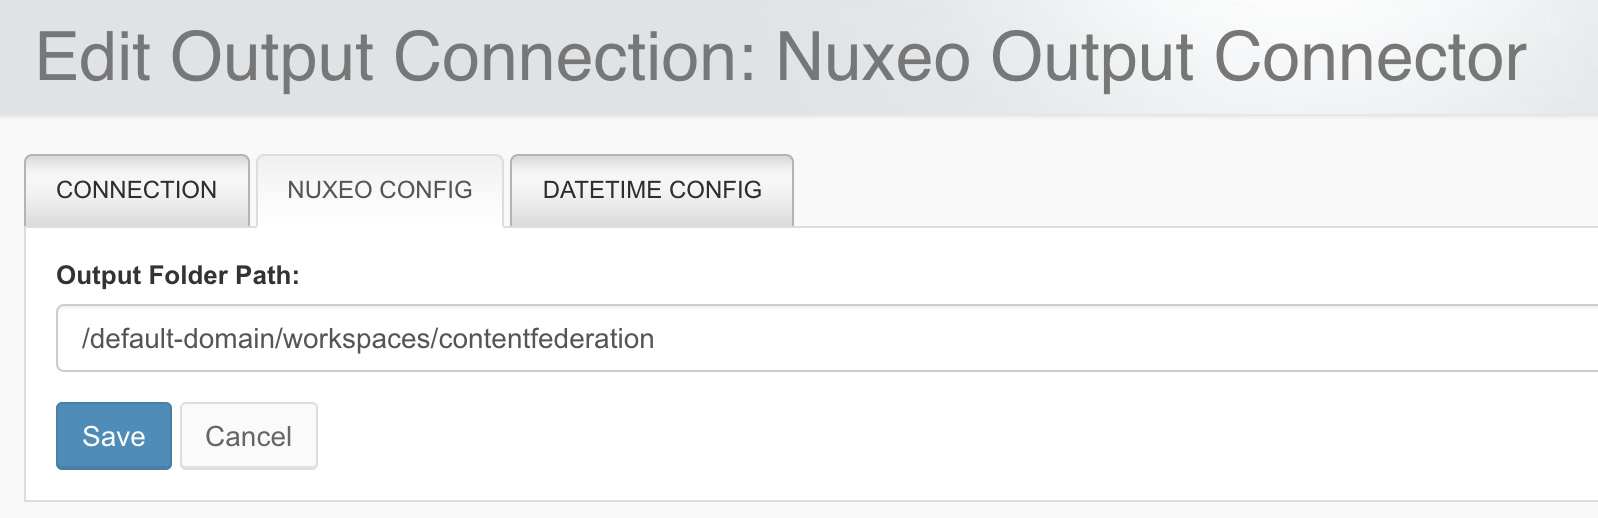 nuxeo-output-connector2.png